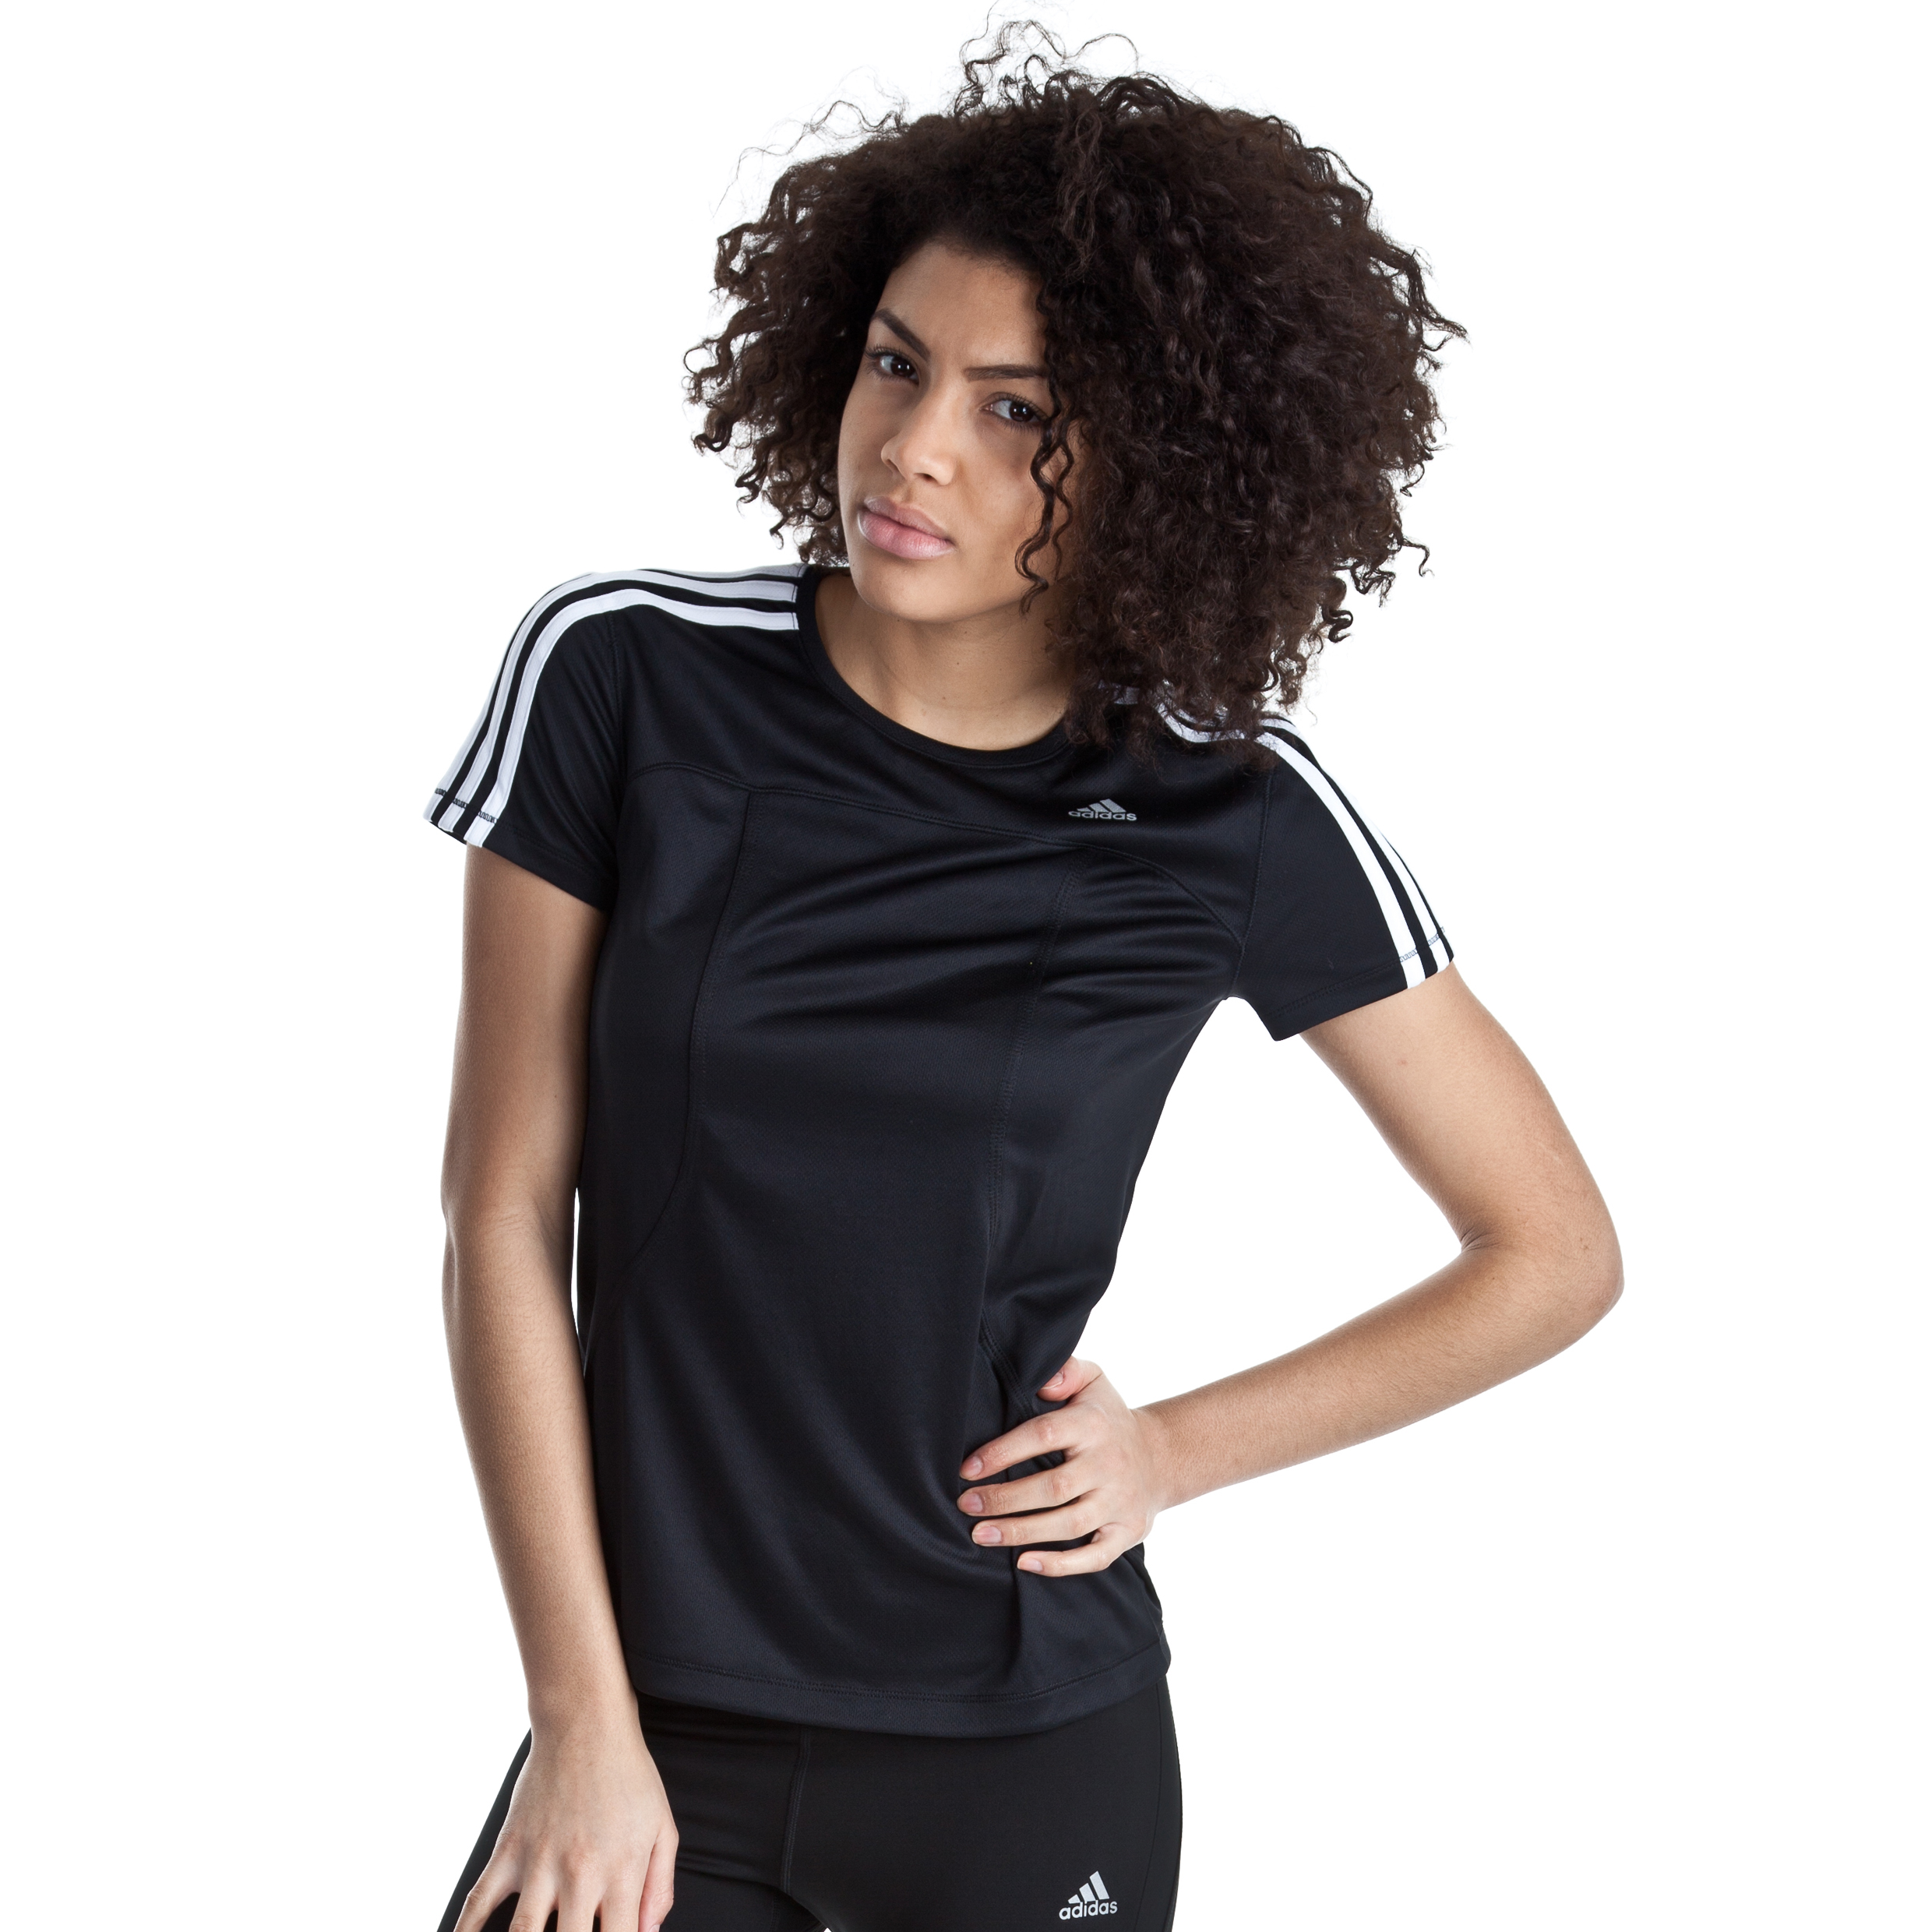 Adidas Response DS T-Shirt - Black/White - Womens